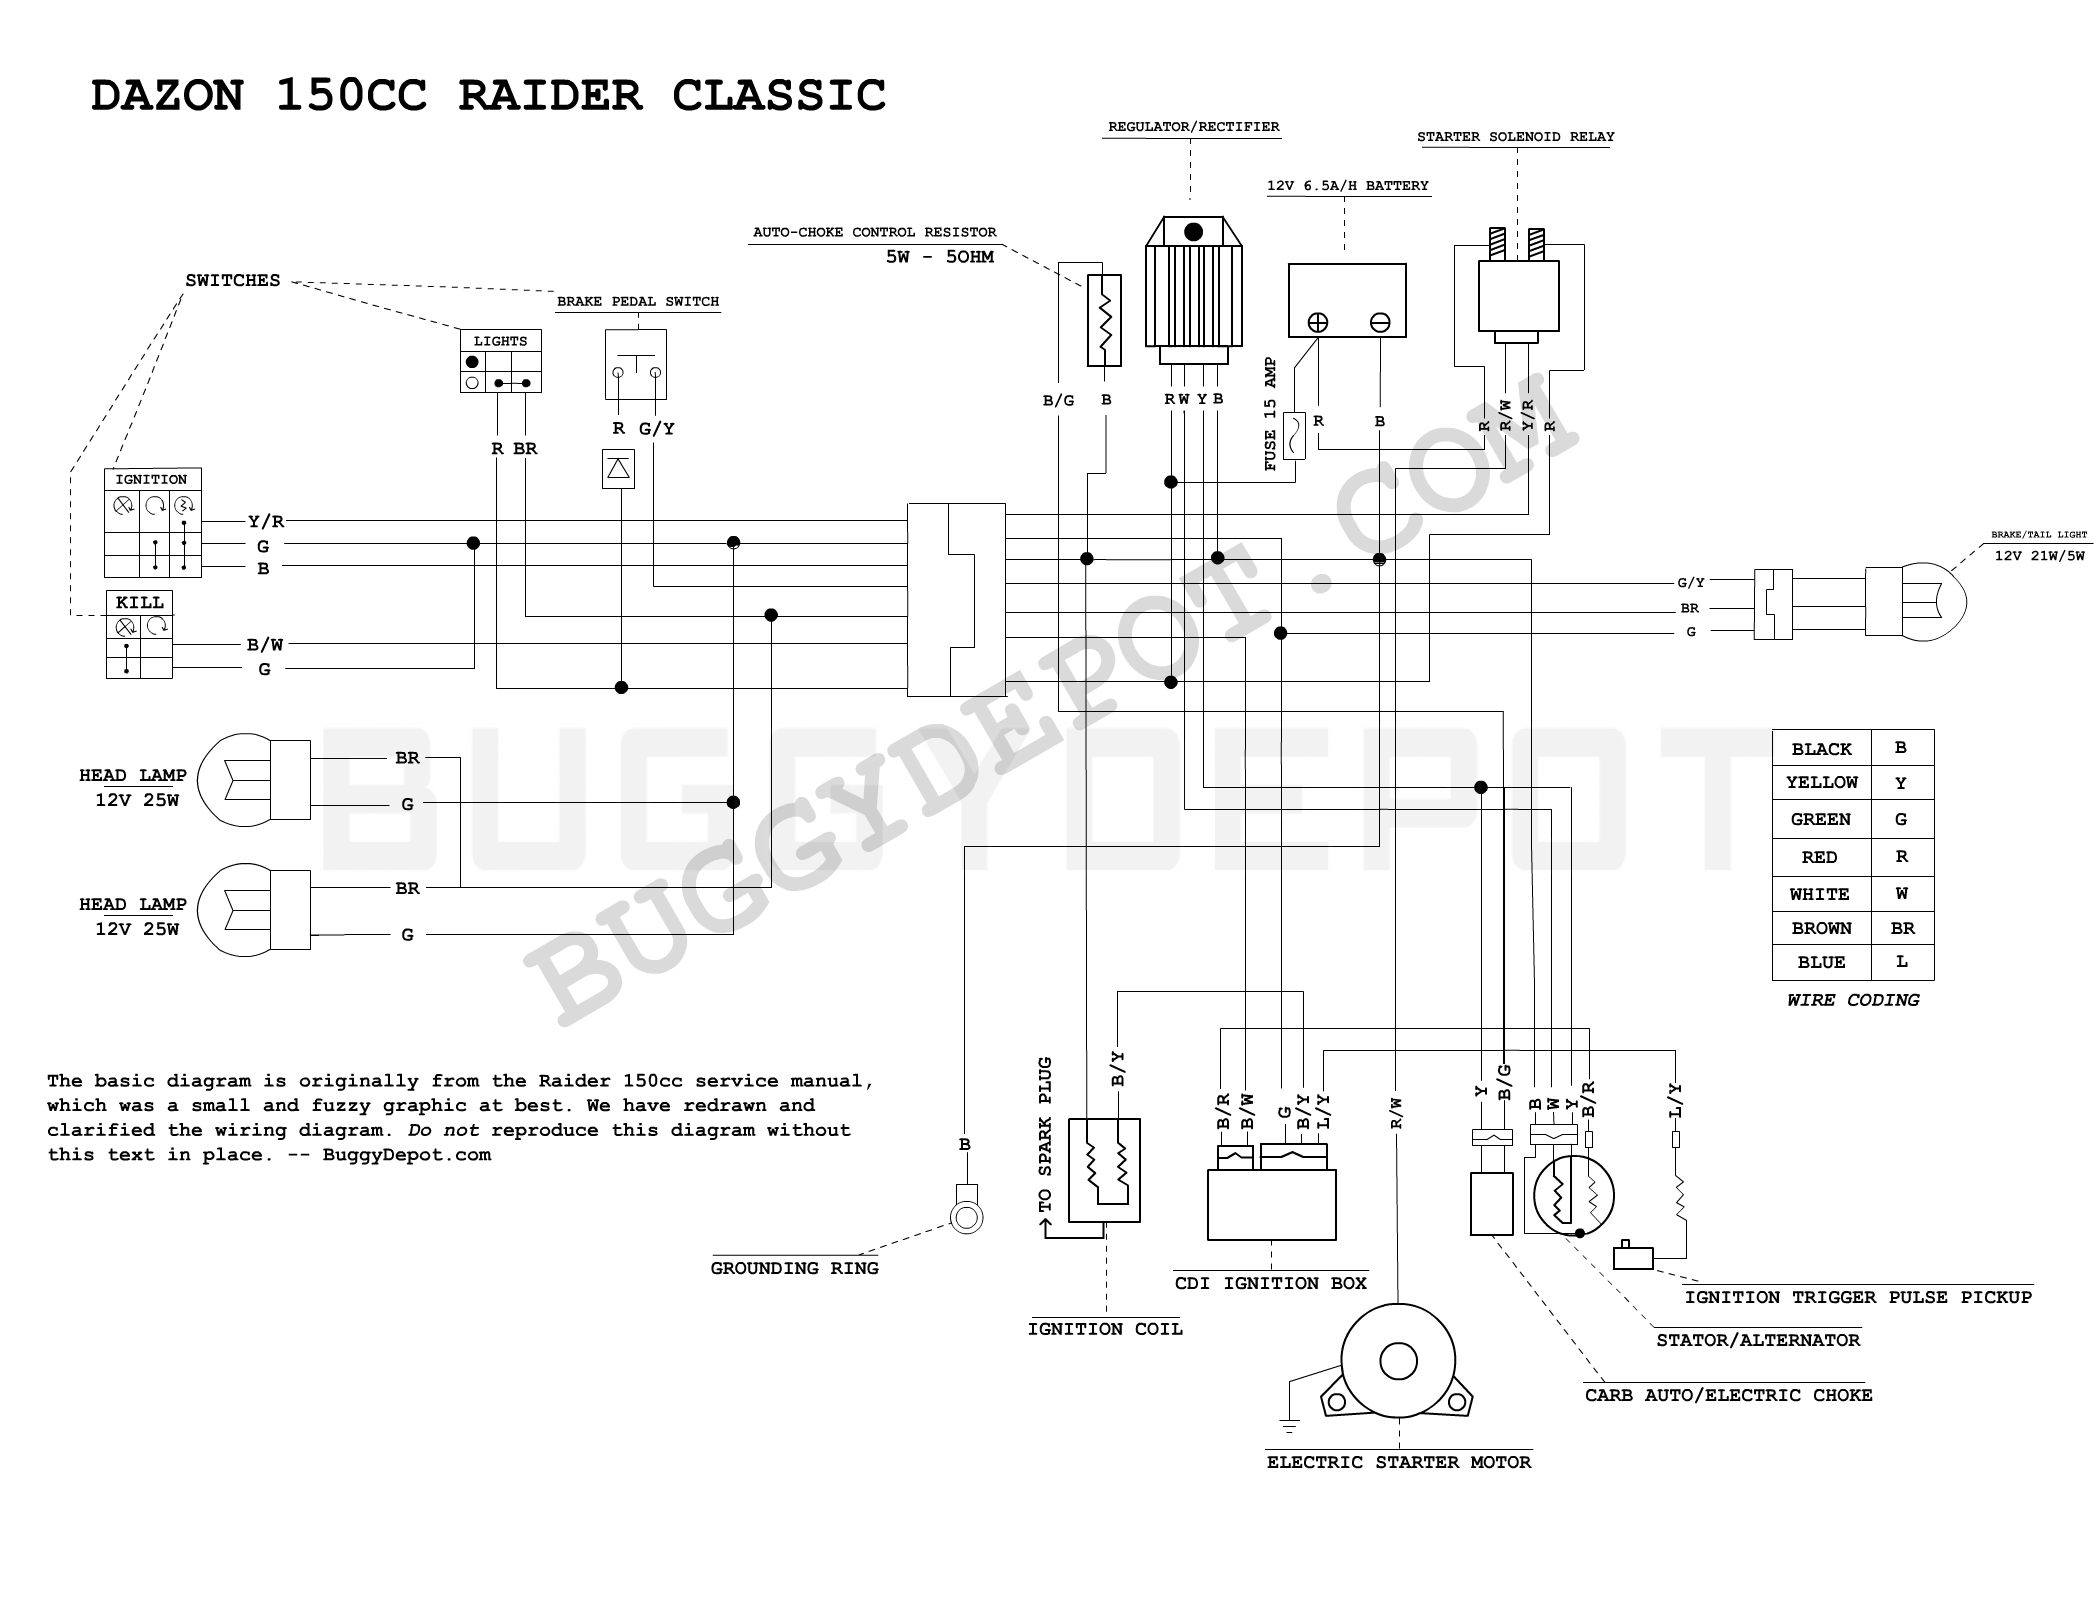 article_33_1278205207 carter talon 150 wiring diagram  at panicattacktreatment.co